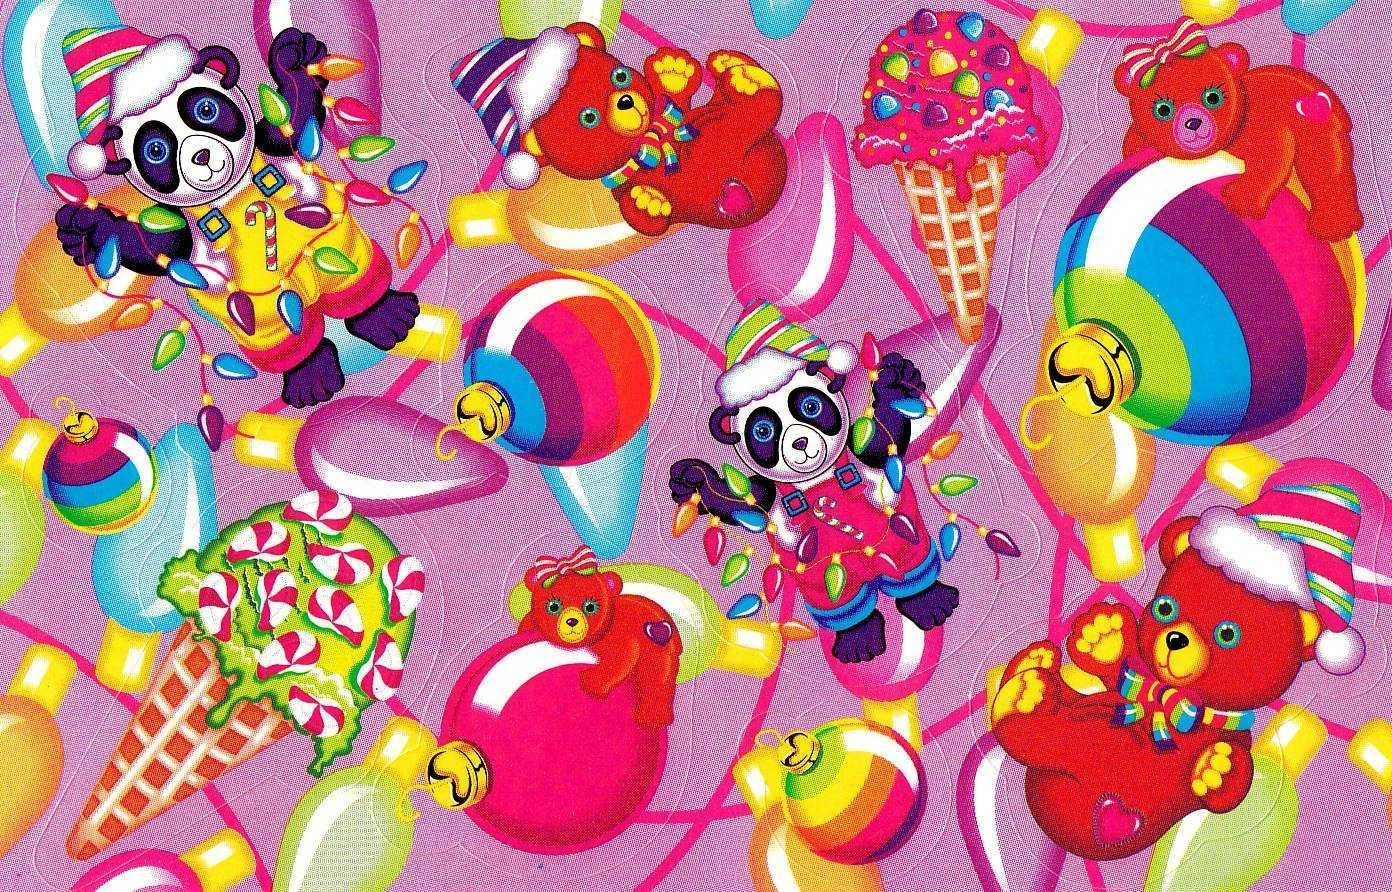 lisa frank wallpaper high quality full hd pics of iphone | wallvie